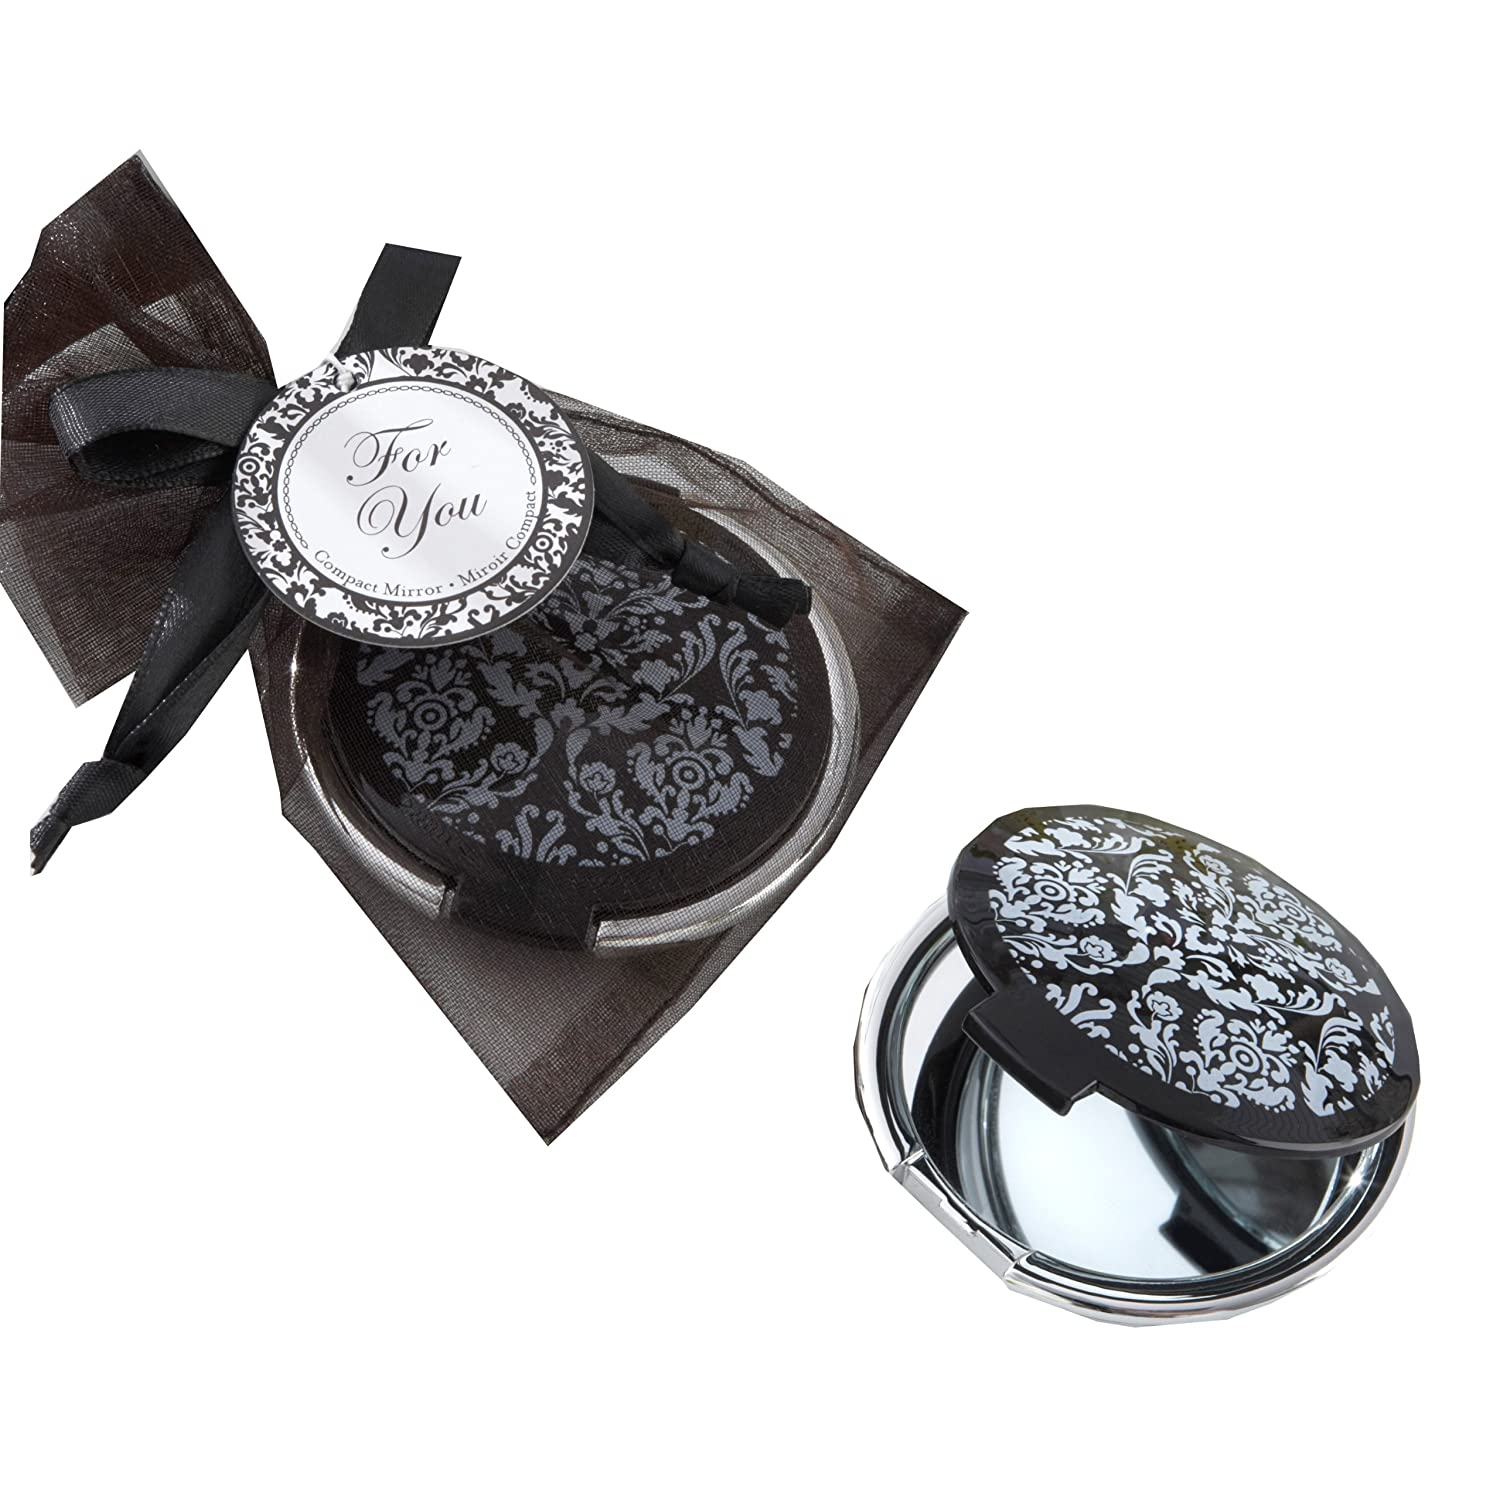 Amazon.com: Reflections Elegant Black-and-White Mirror Compact: Home ...